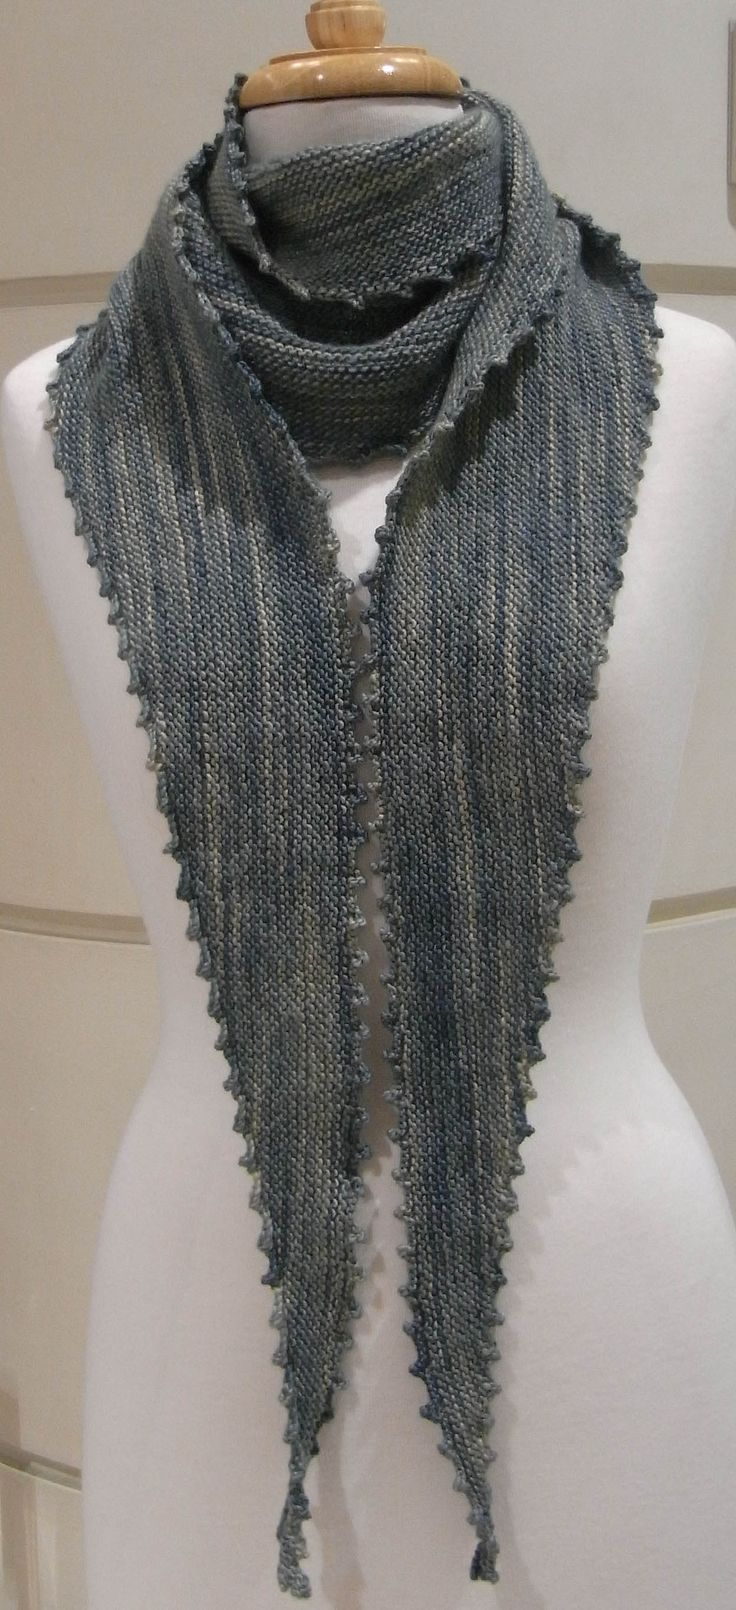 Morris and Sons - Picot Edge Scarf Pattern